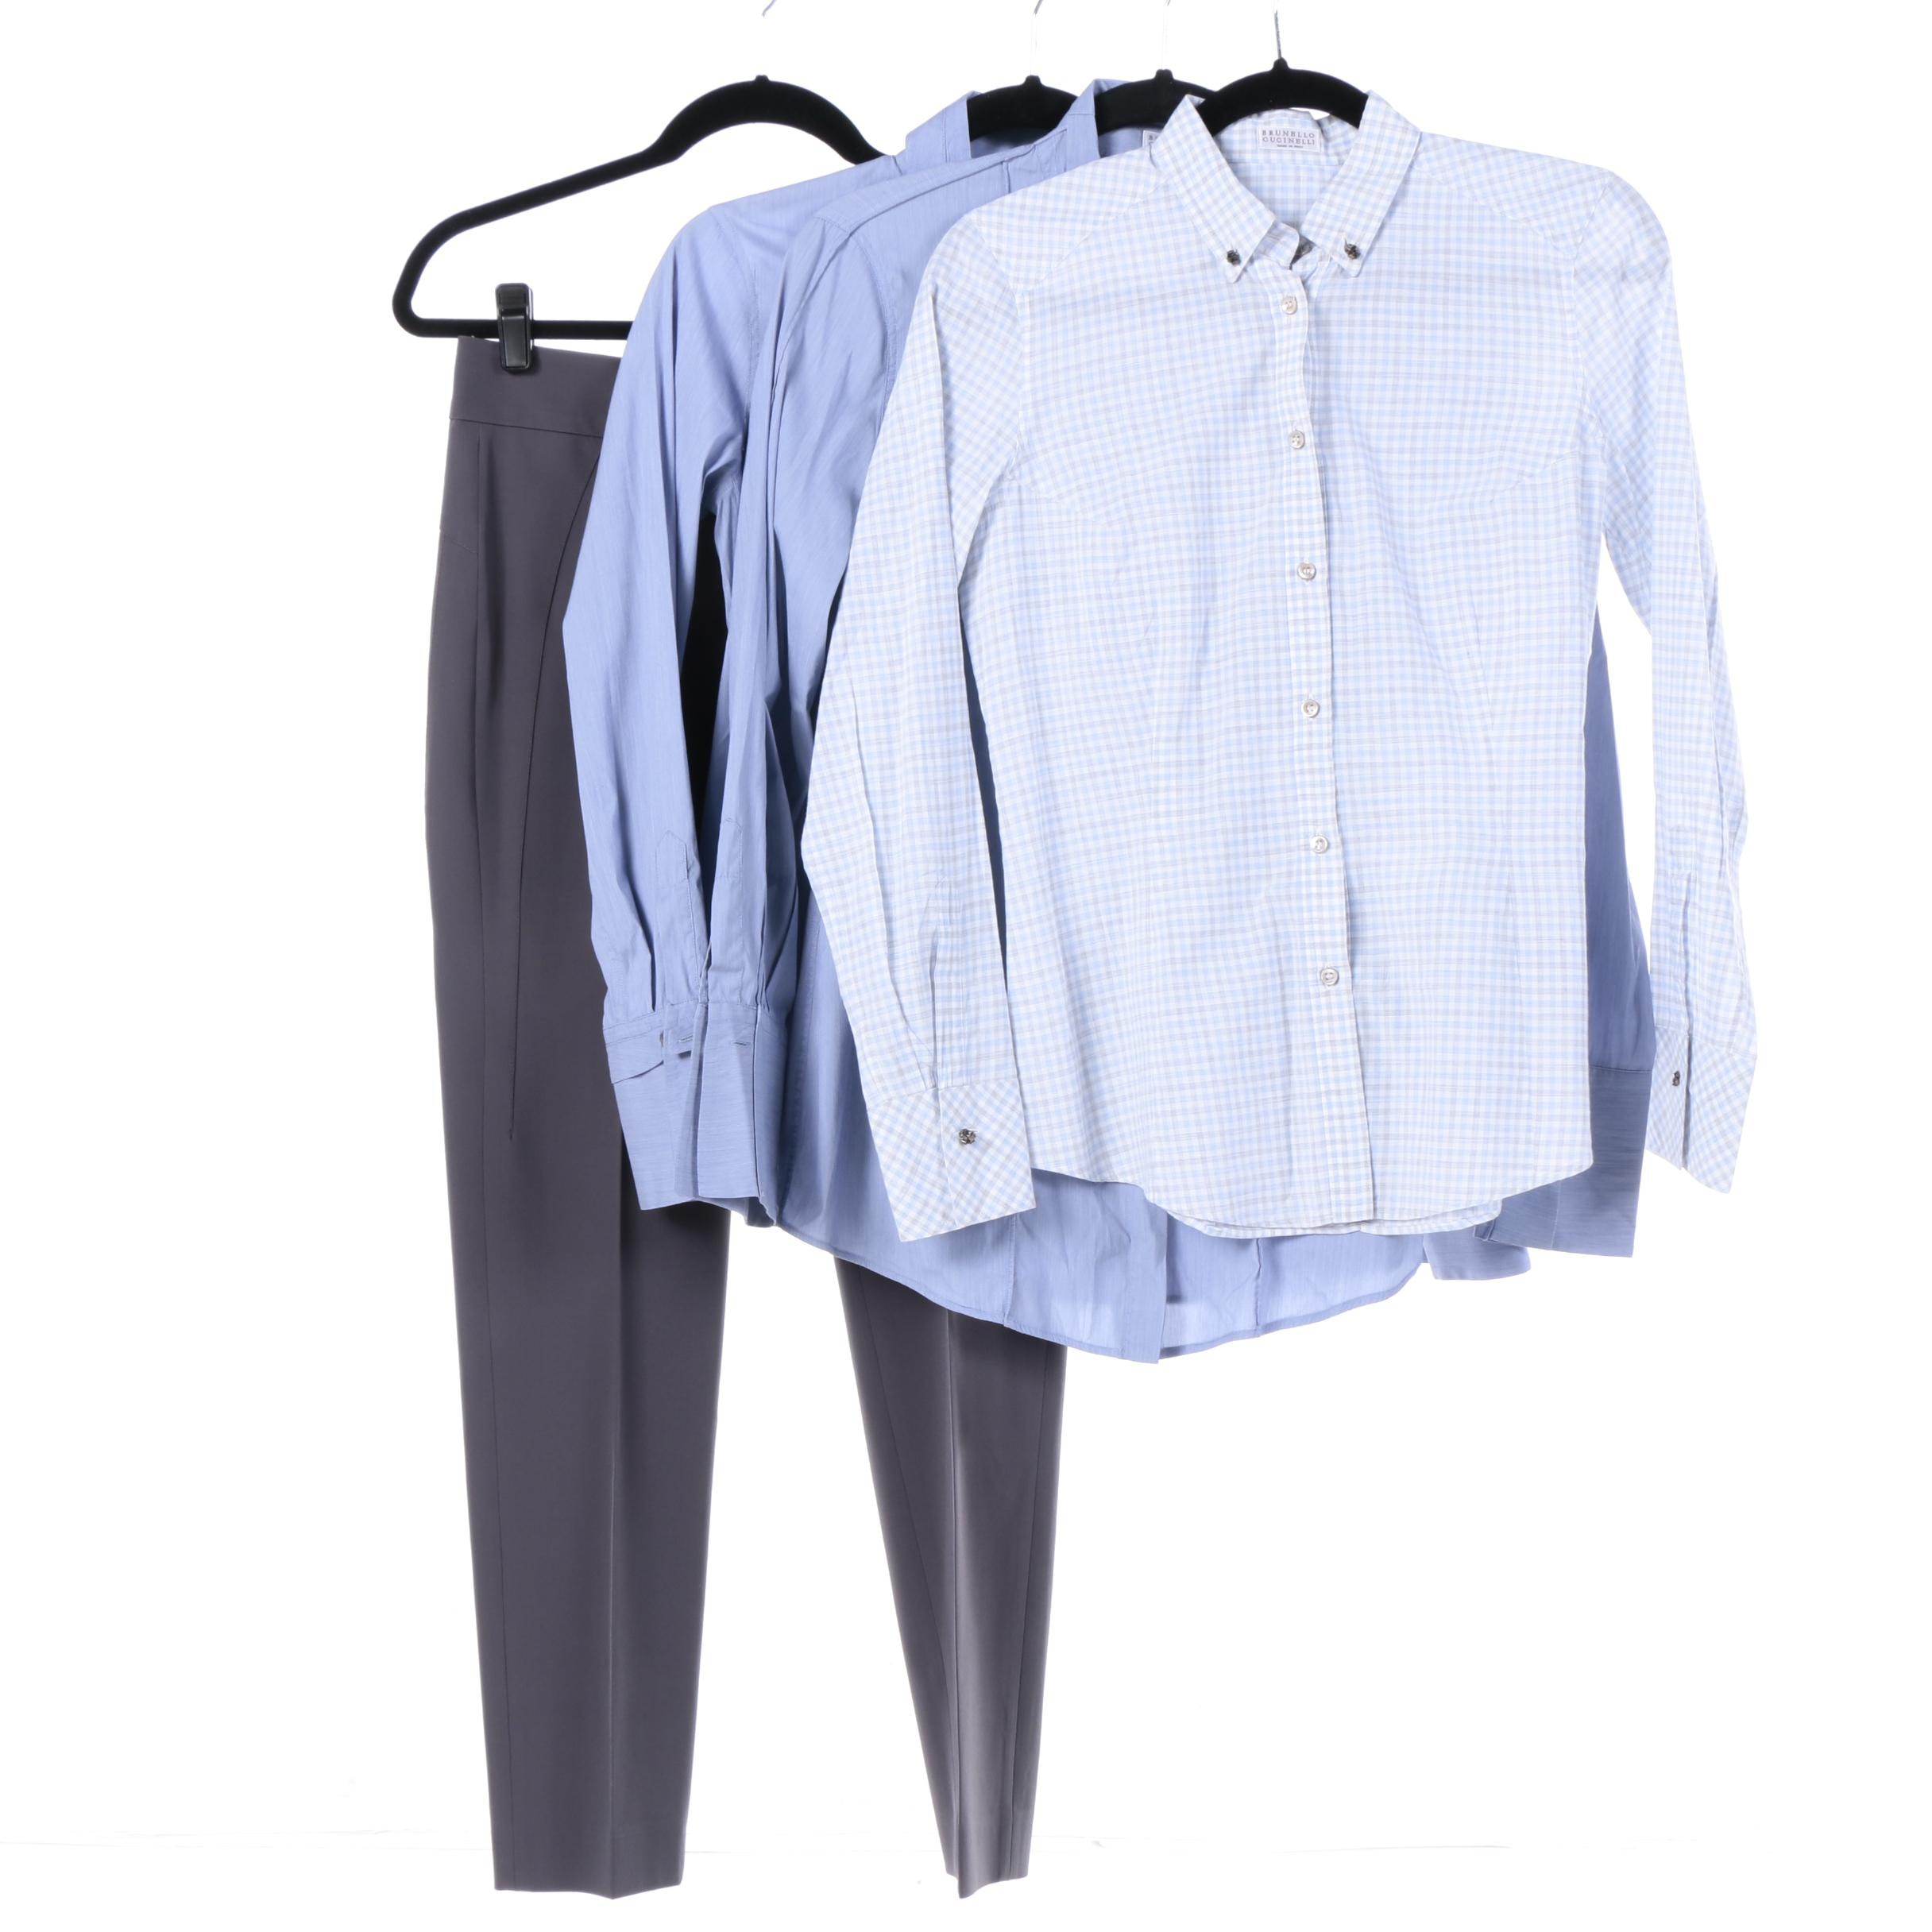 Brunello Cucinello Button-Down Shirts and Pants